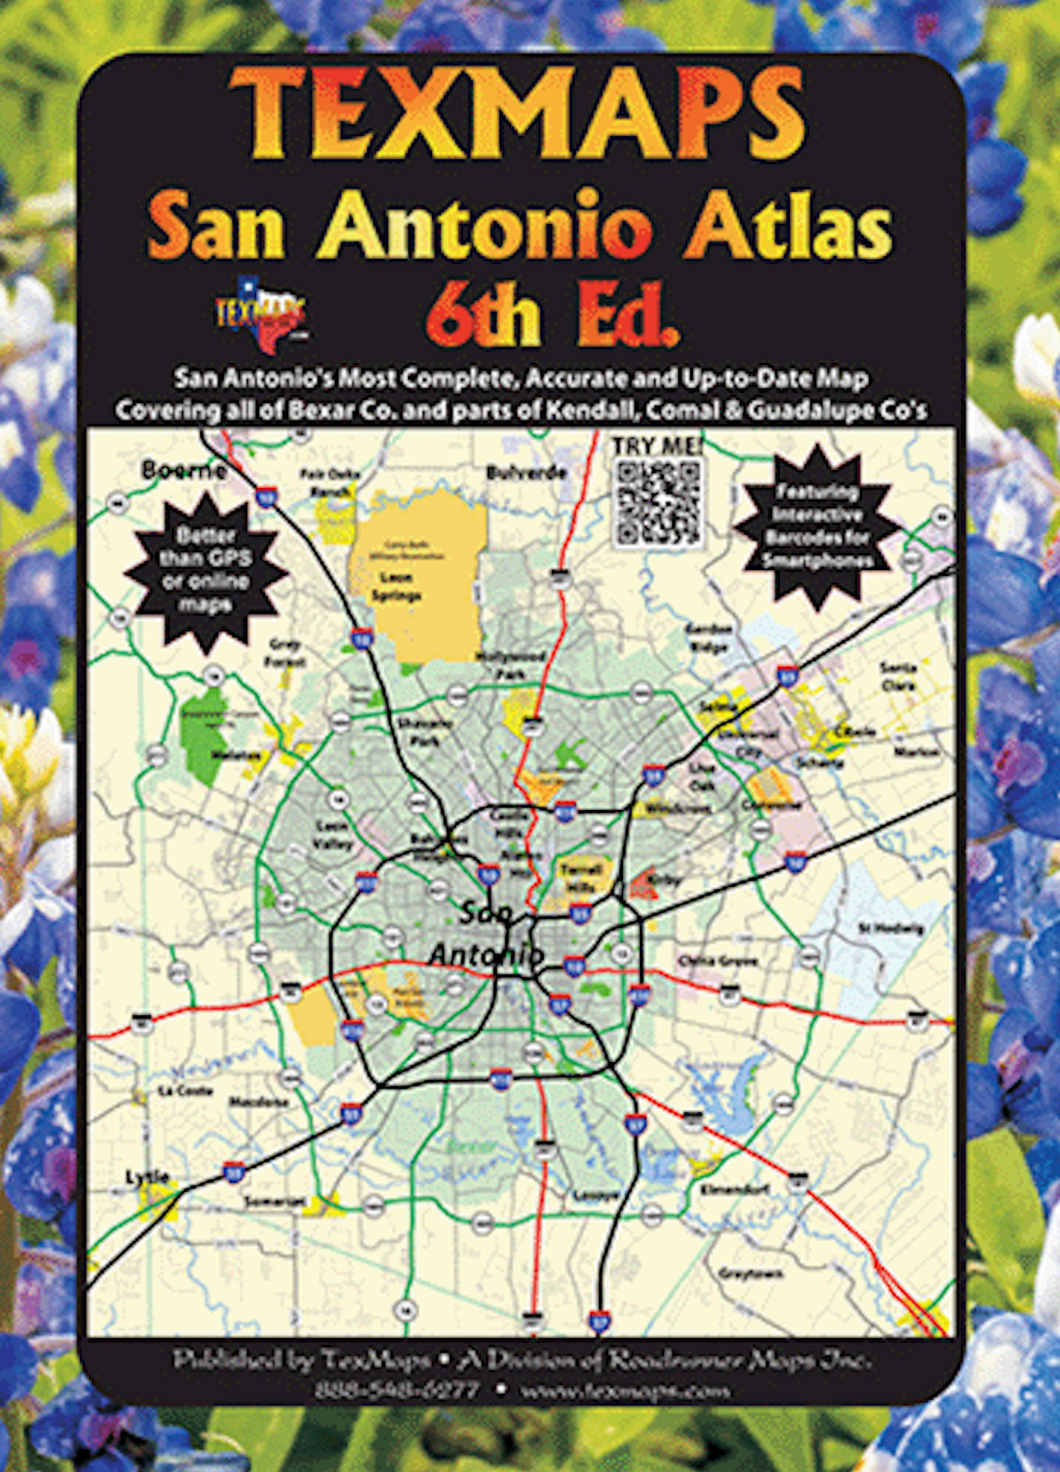 San Antonio Atlas - Houston Map Company